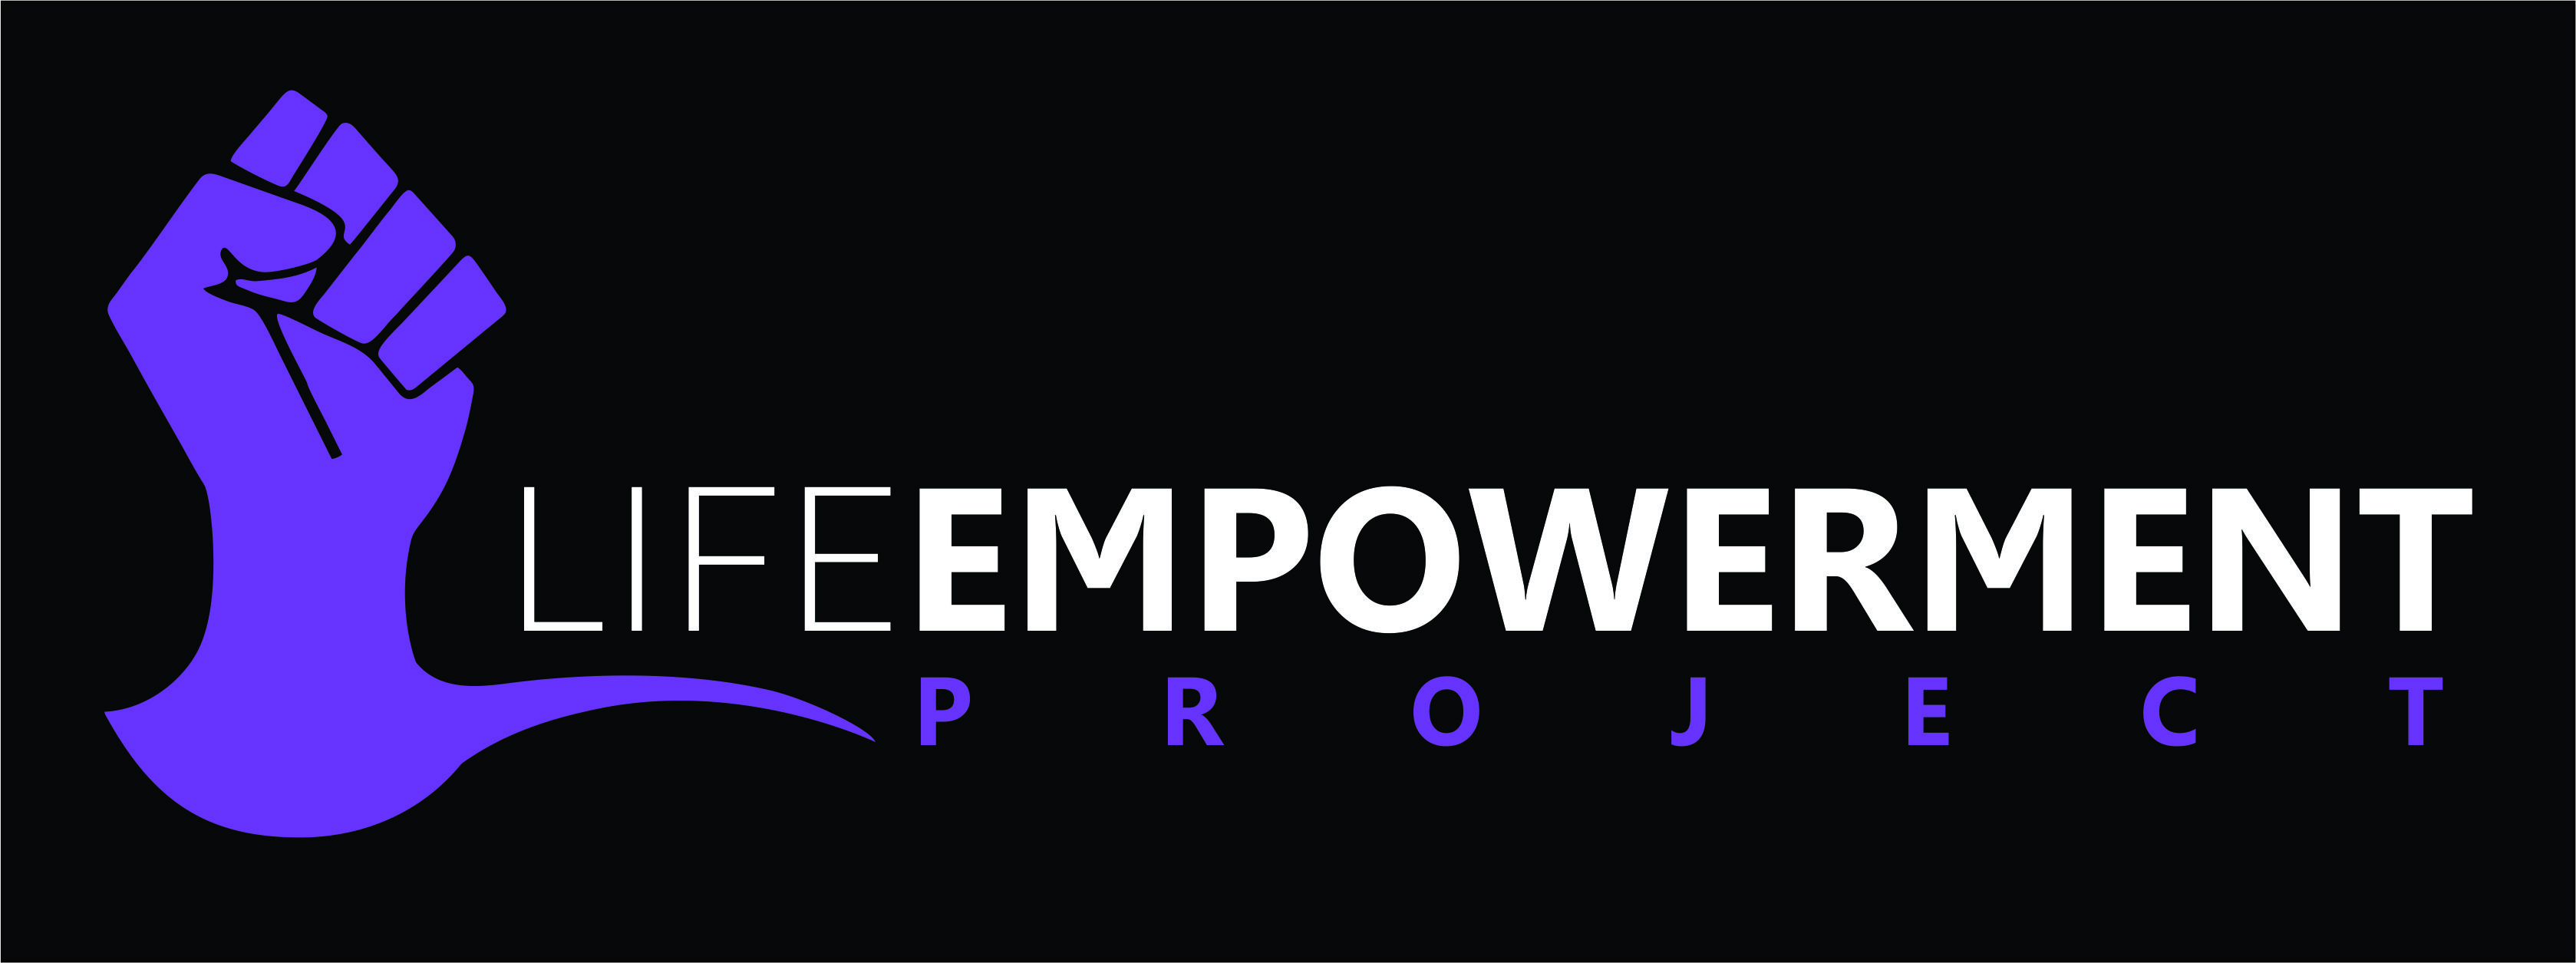 Life Empowerment Project